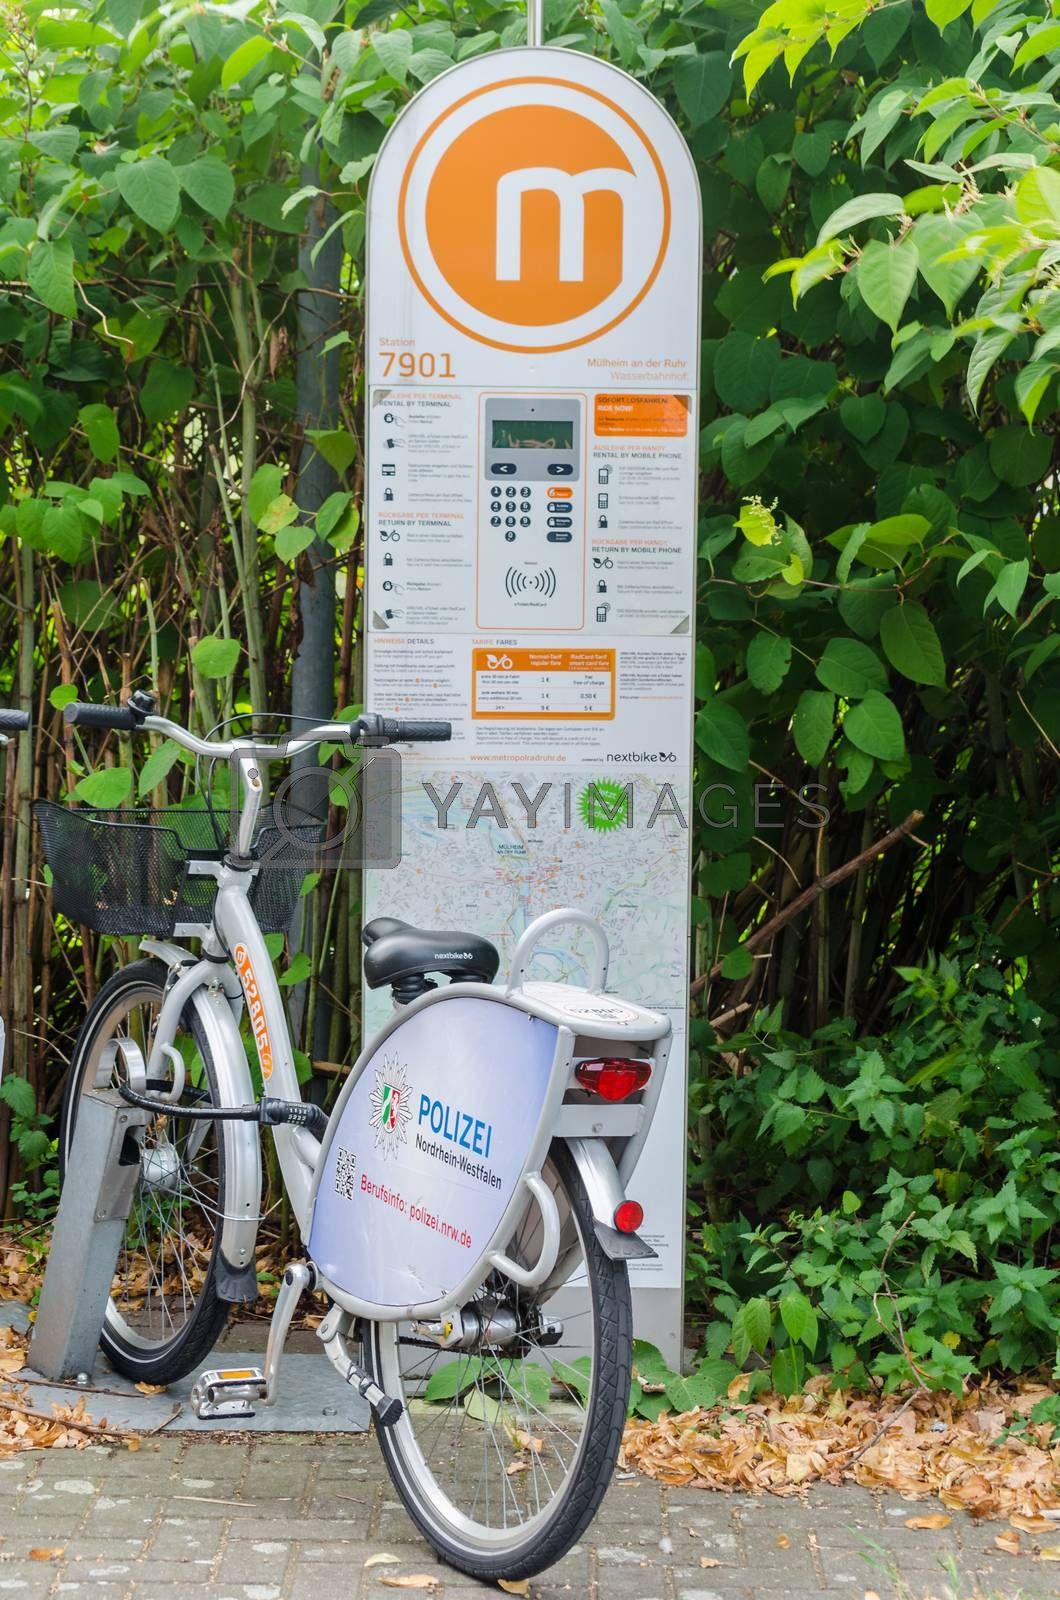 Royalty free image of Bicycle Rental Station by JFsPic